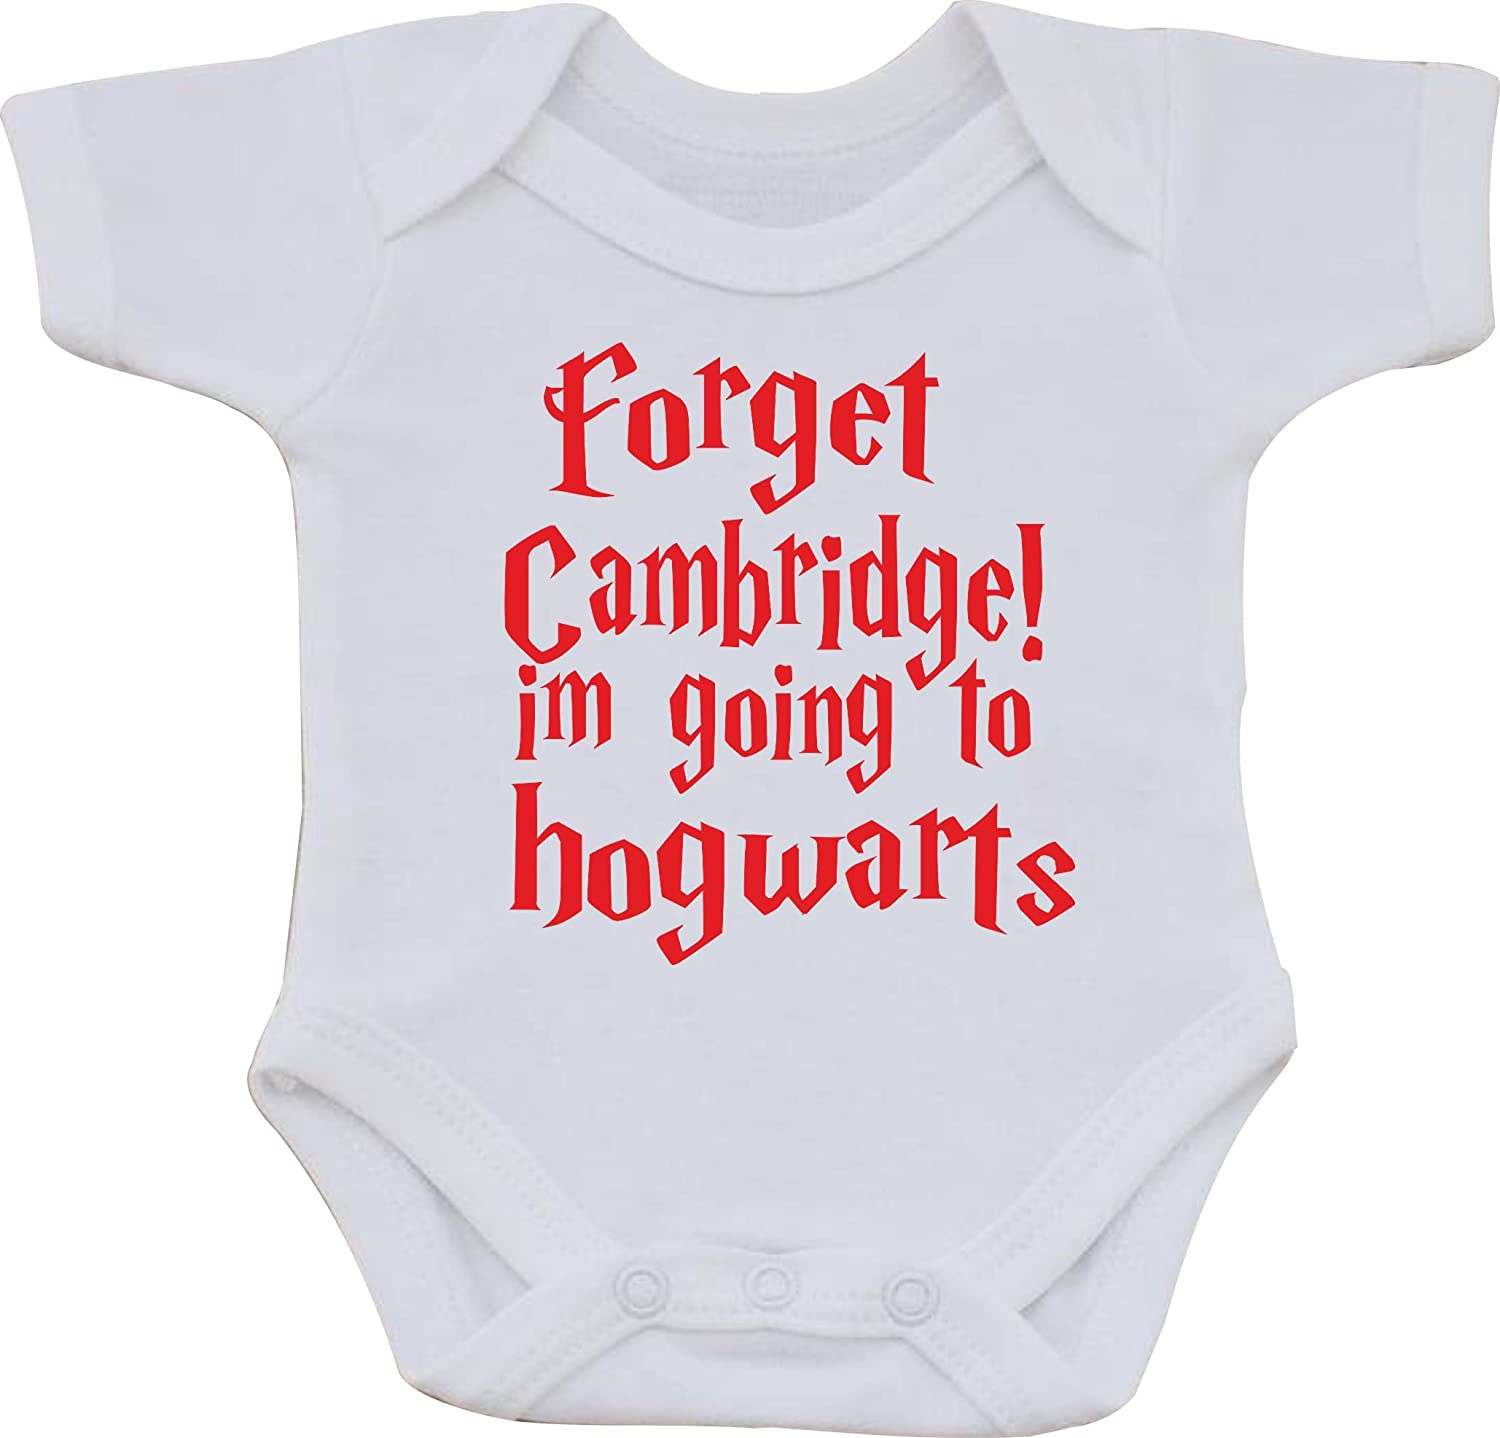 First Size bib Forget Cambridge IM Going to Hogwarts Funny Cotton White Baby Vest OR BIB